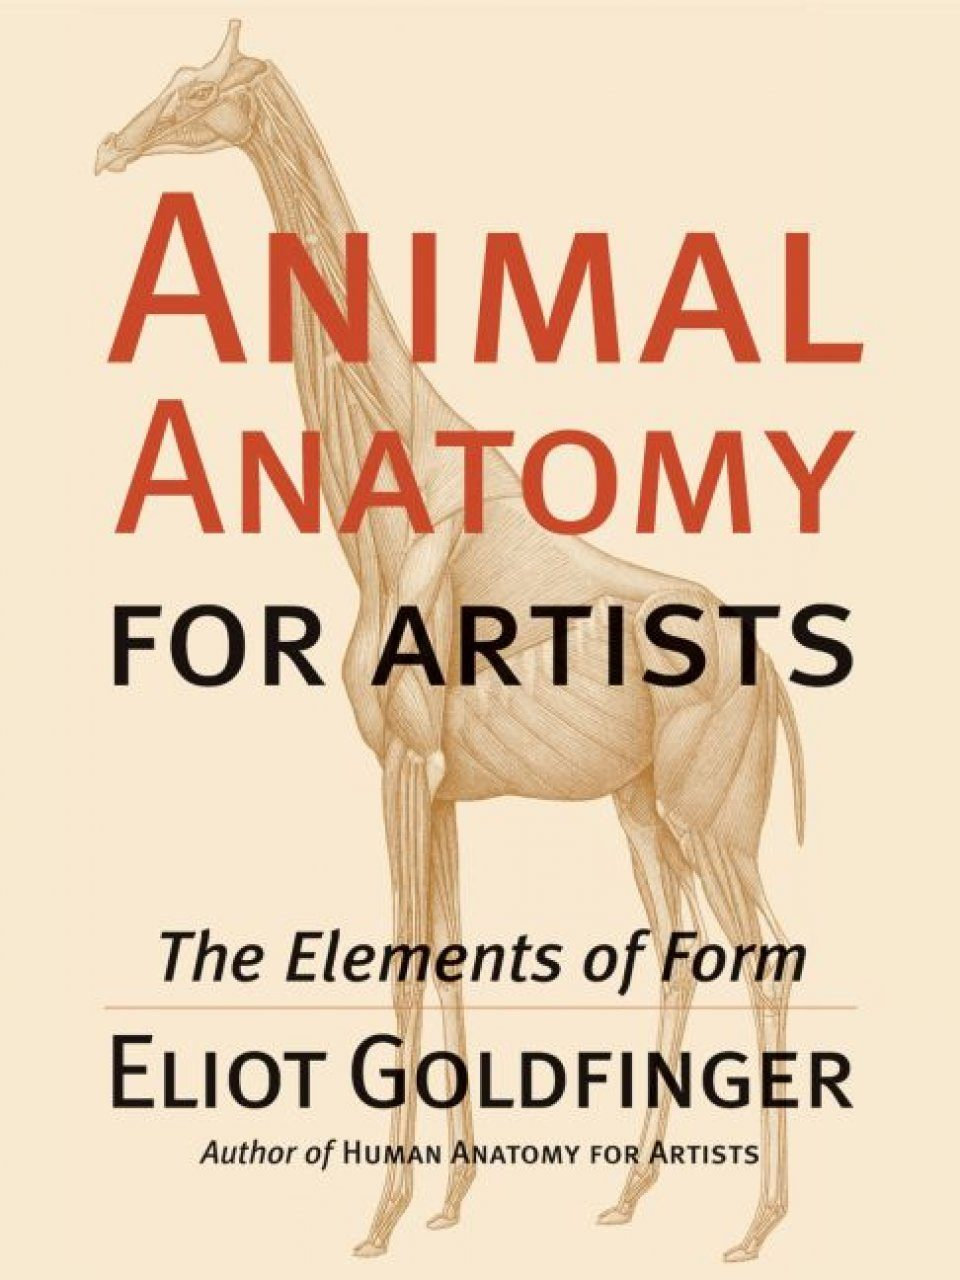 Human anatomy for artists the elements of form